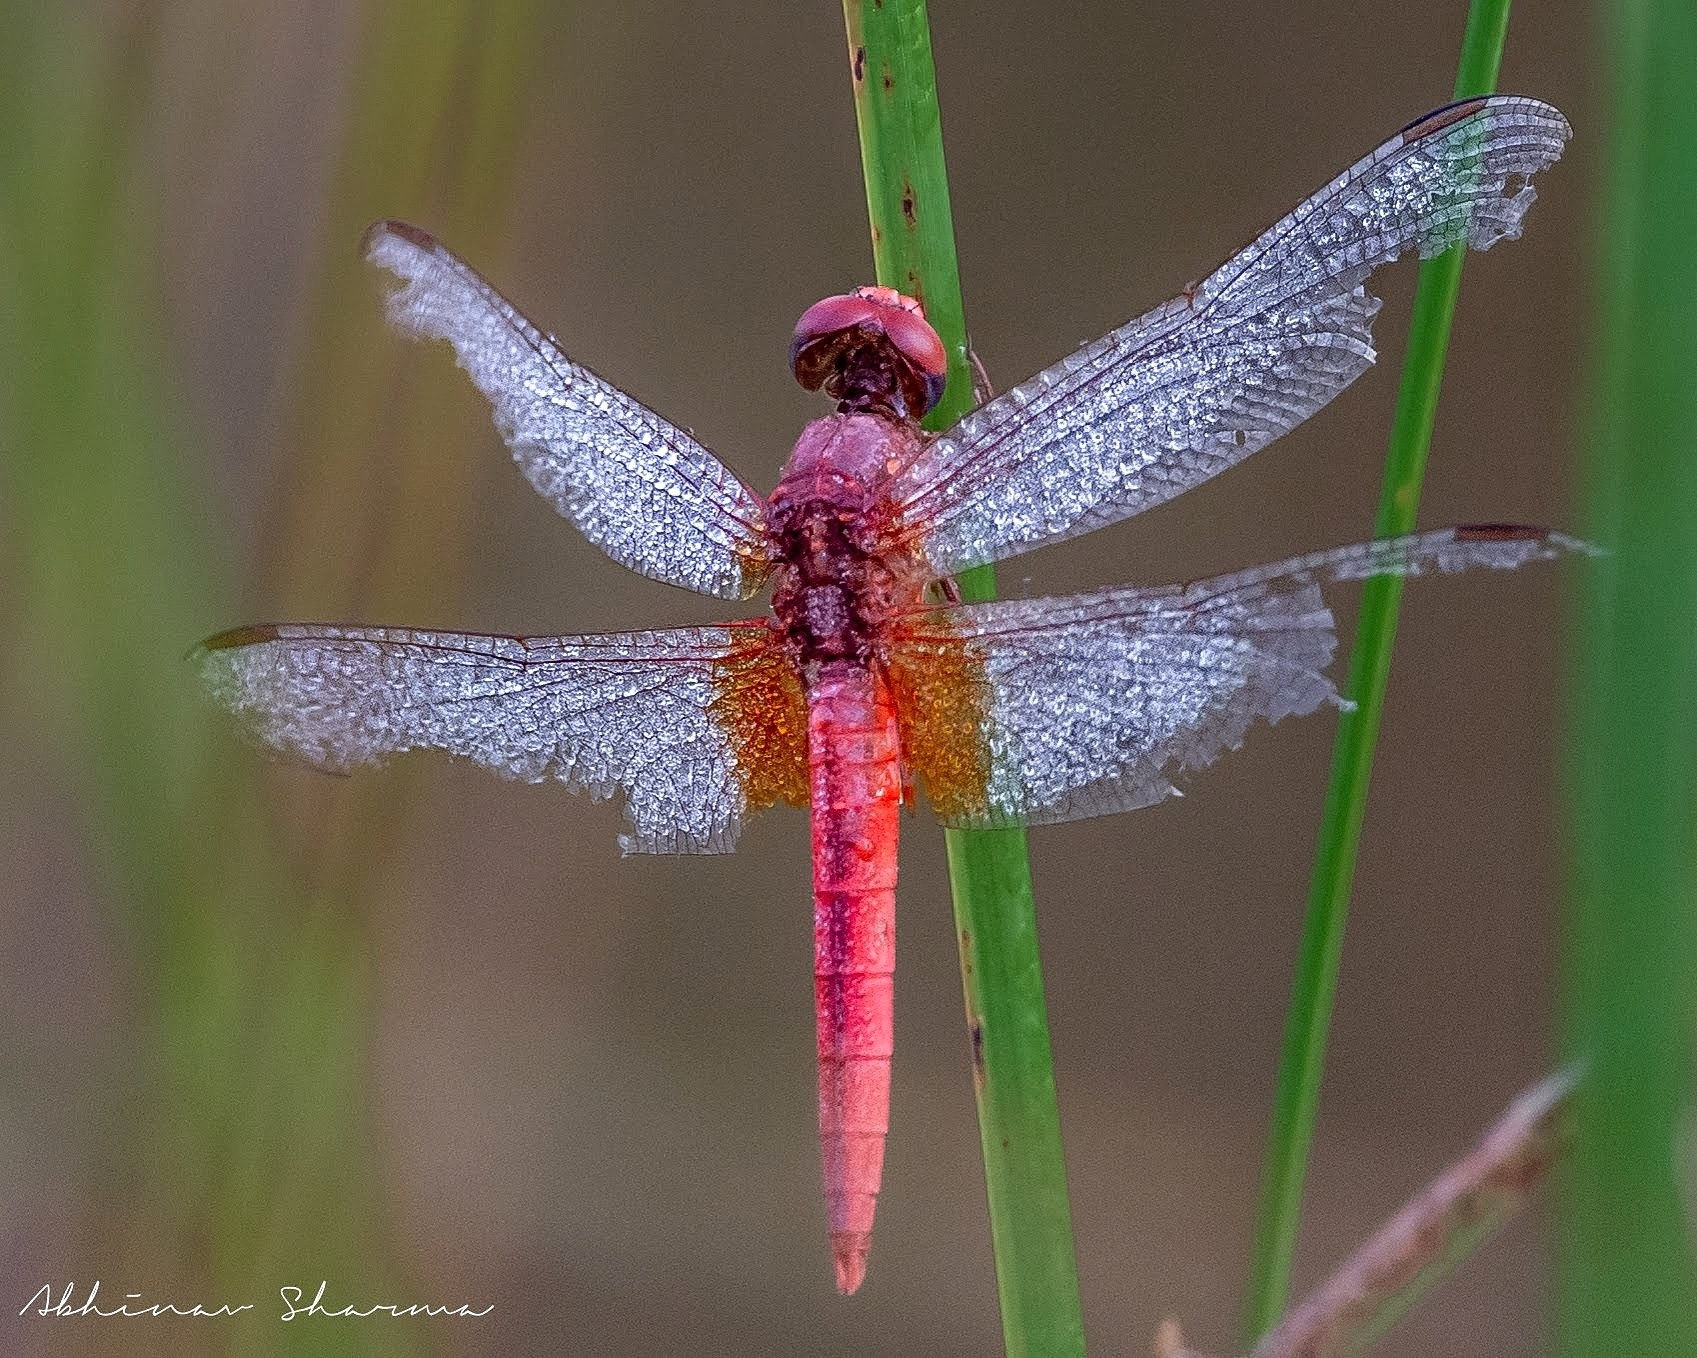 early morning dragonfly by Abhinav sharma